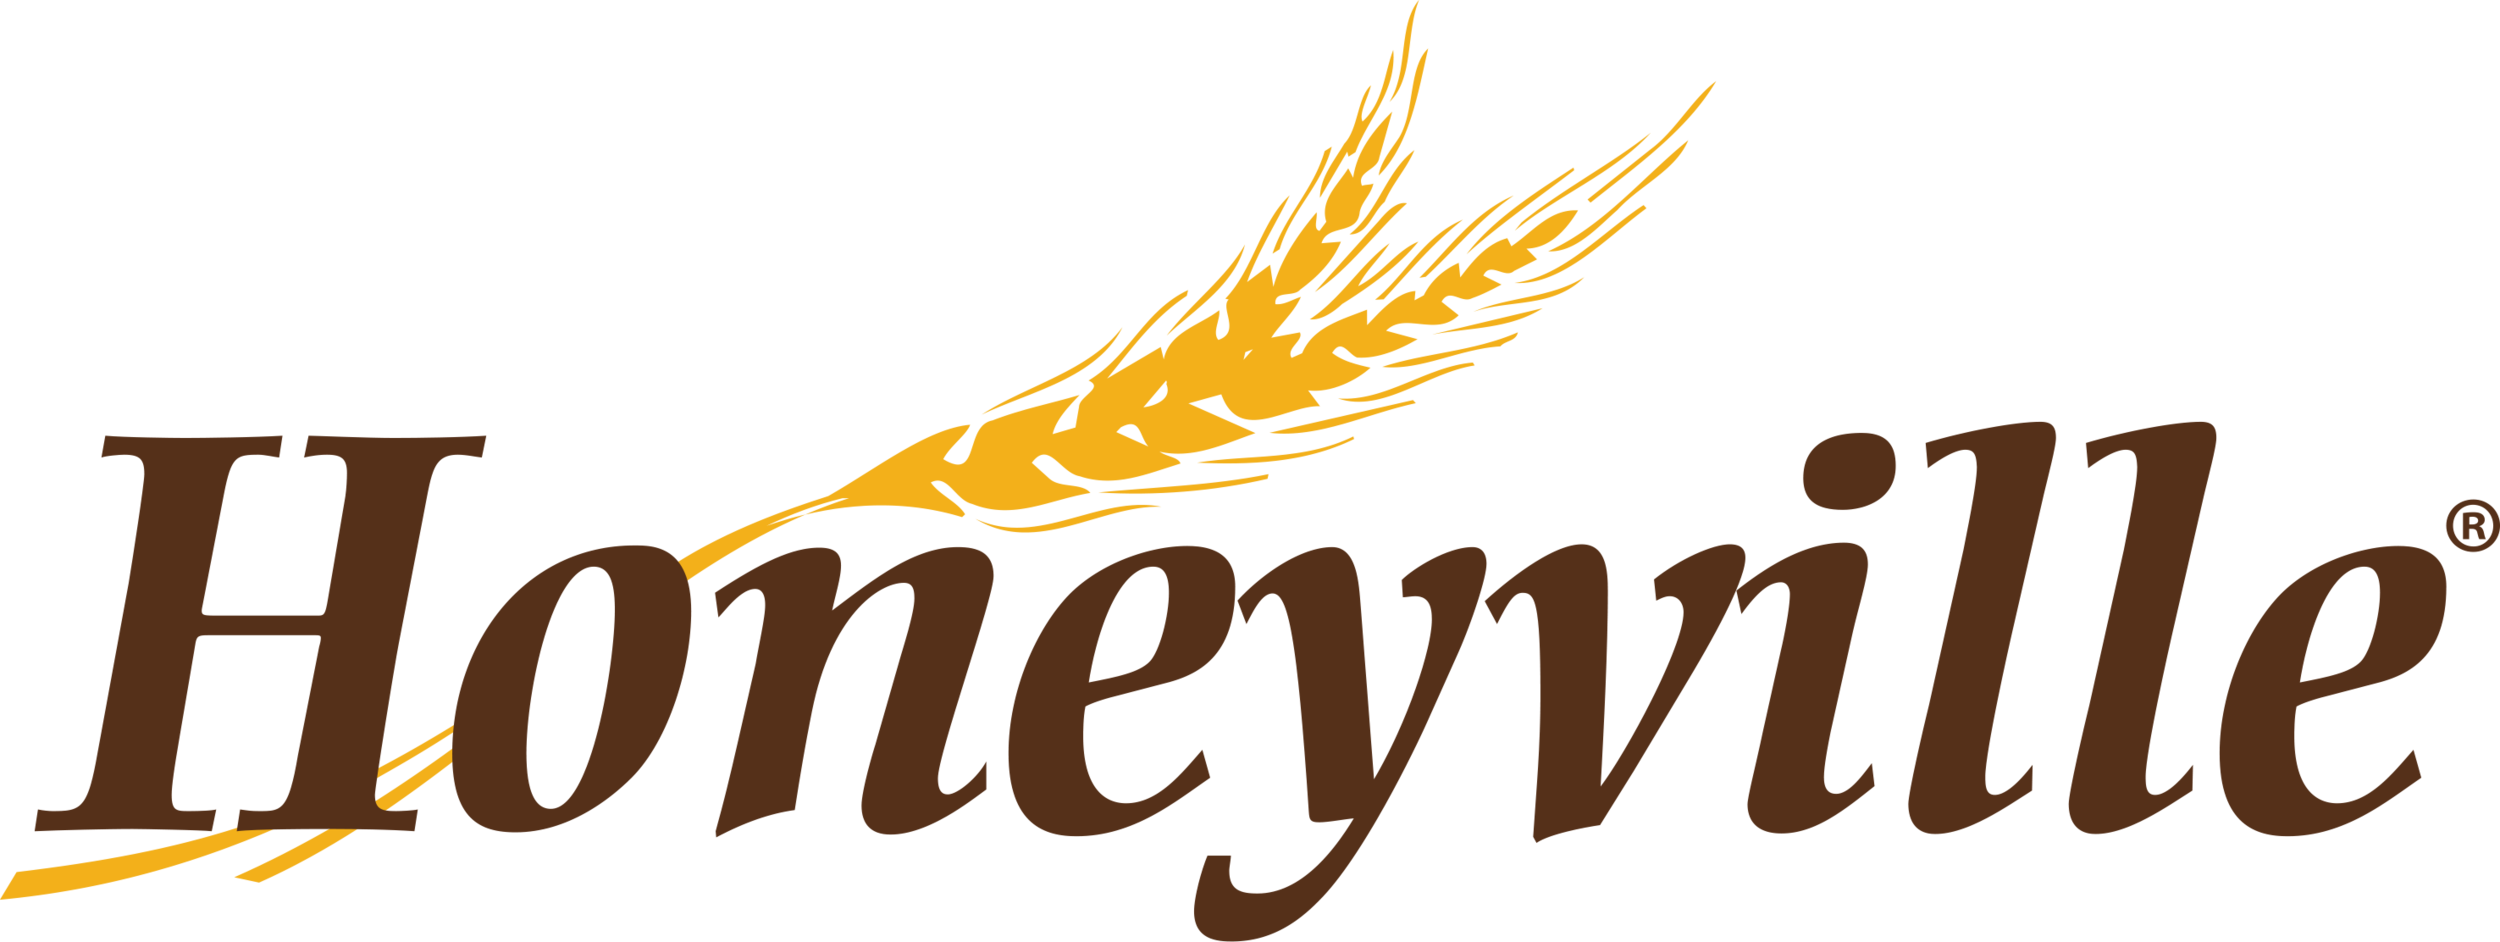 honeyville grains logo.png